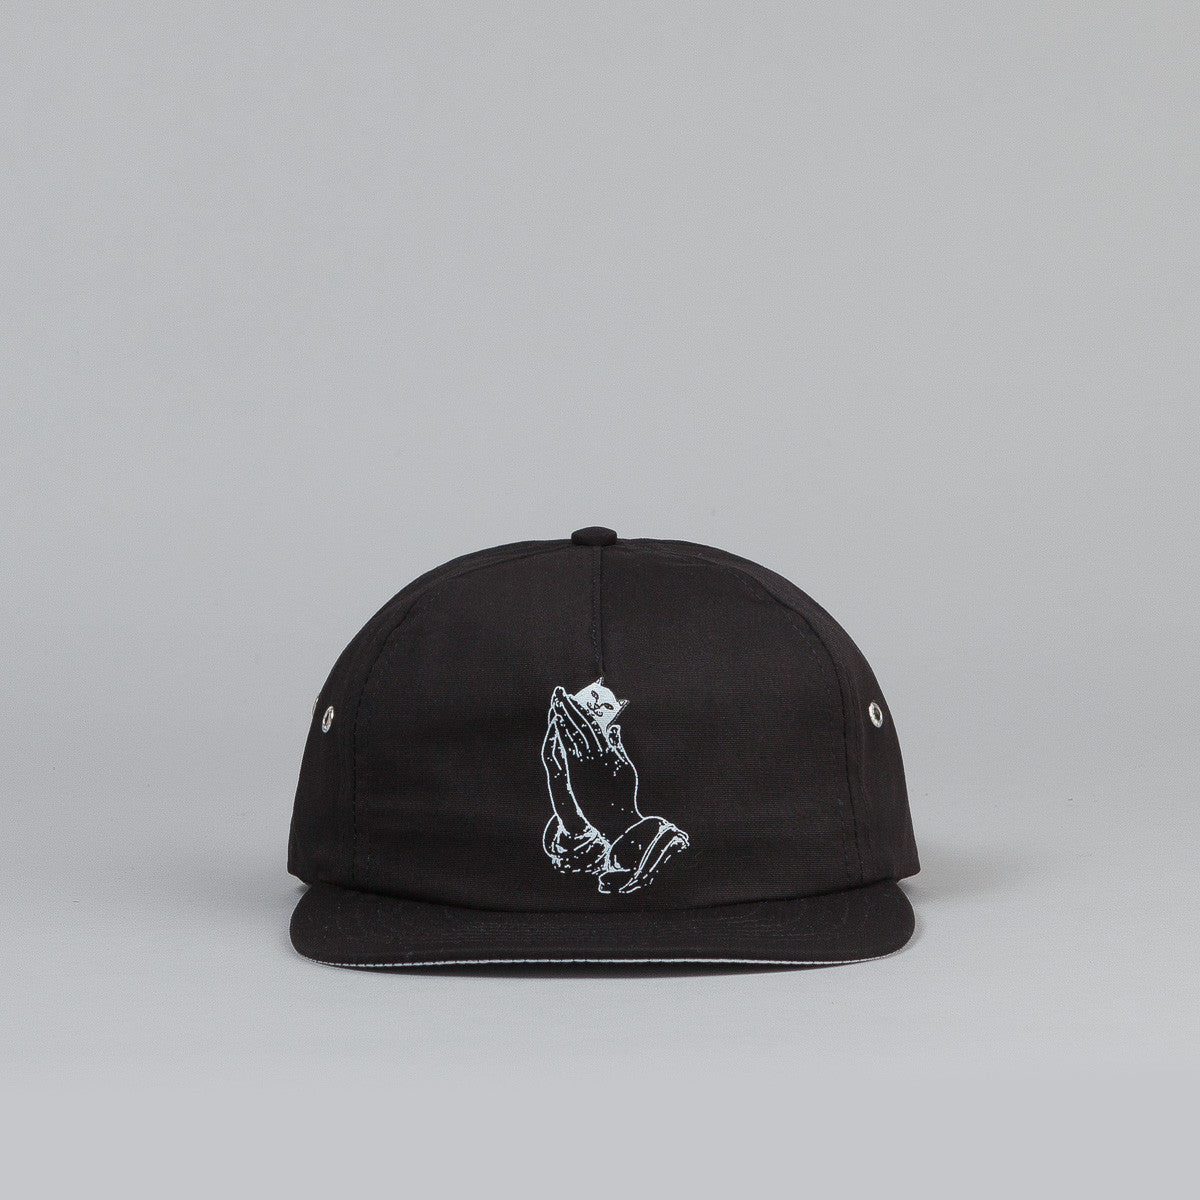 Rip N Dip Lord Nermal 5 Panel Cap- Black